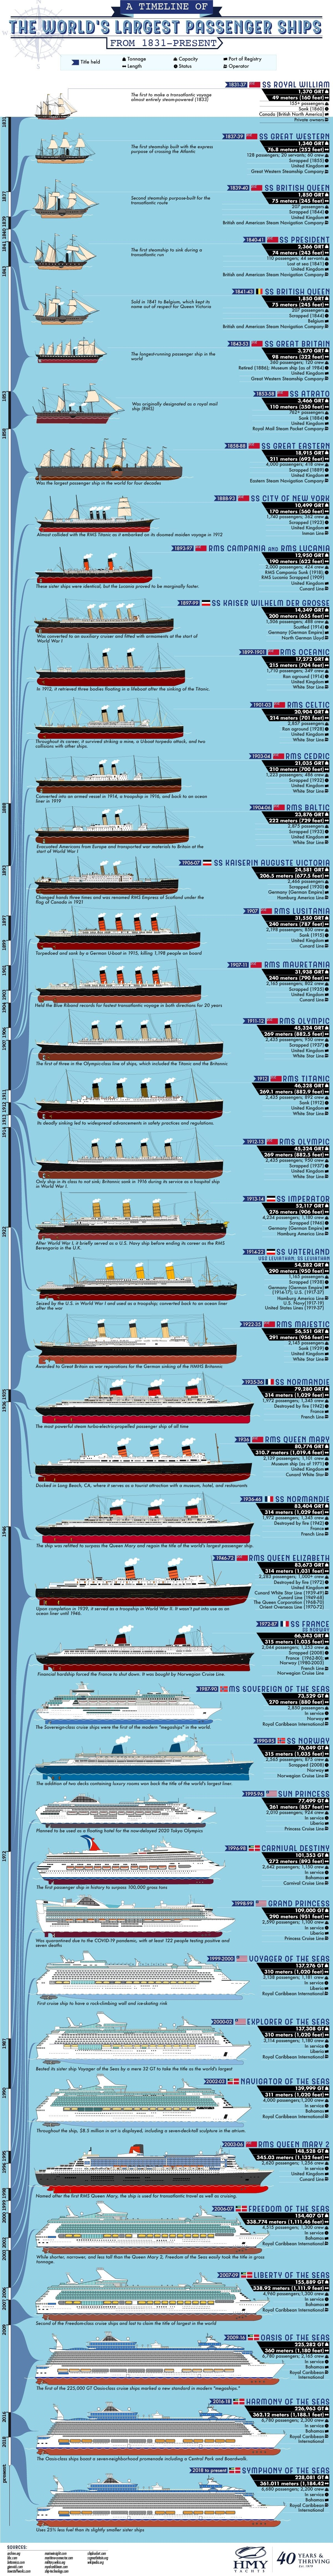 A Timeline of the Largest Passenger Ships in the World from 1831-Present #infographic